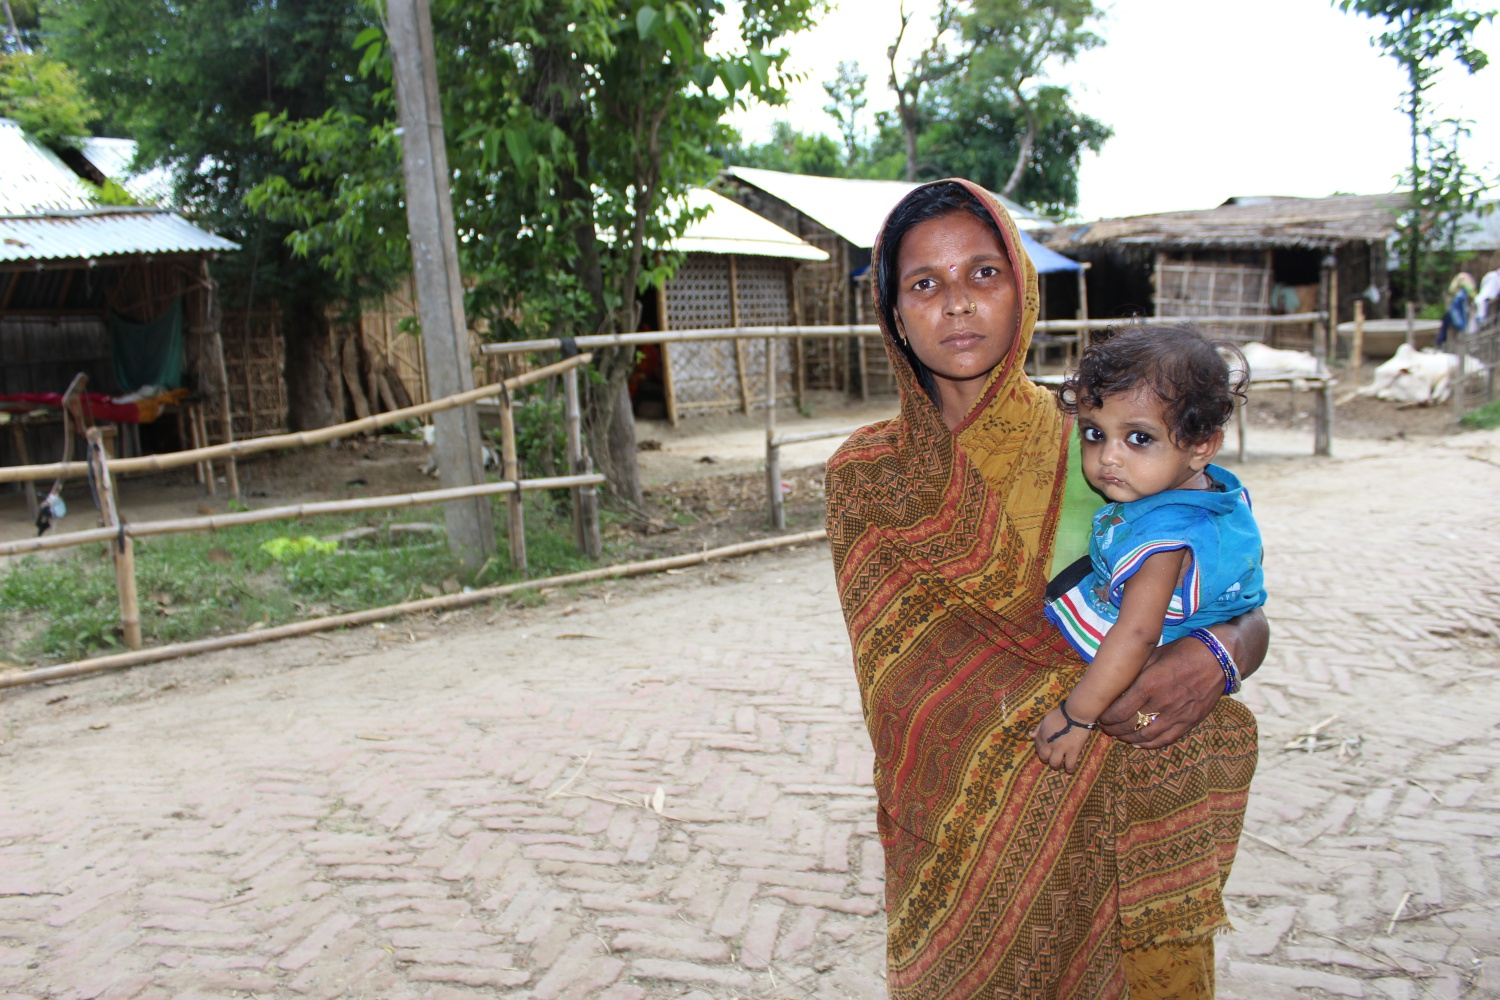 malnutrition in india essay India on sunday night joined britain and other nations at the global hunger event to initiate more steps to end hunger and malnutrition for 170 million children across the globe by the next olympics in rio in 2016.